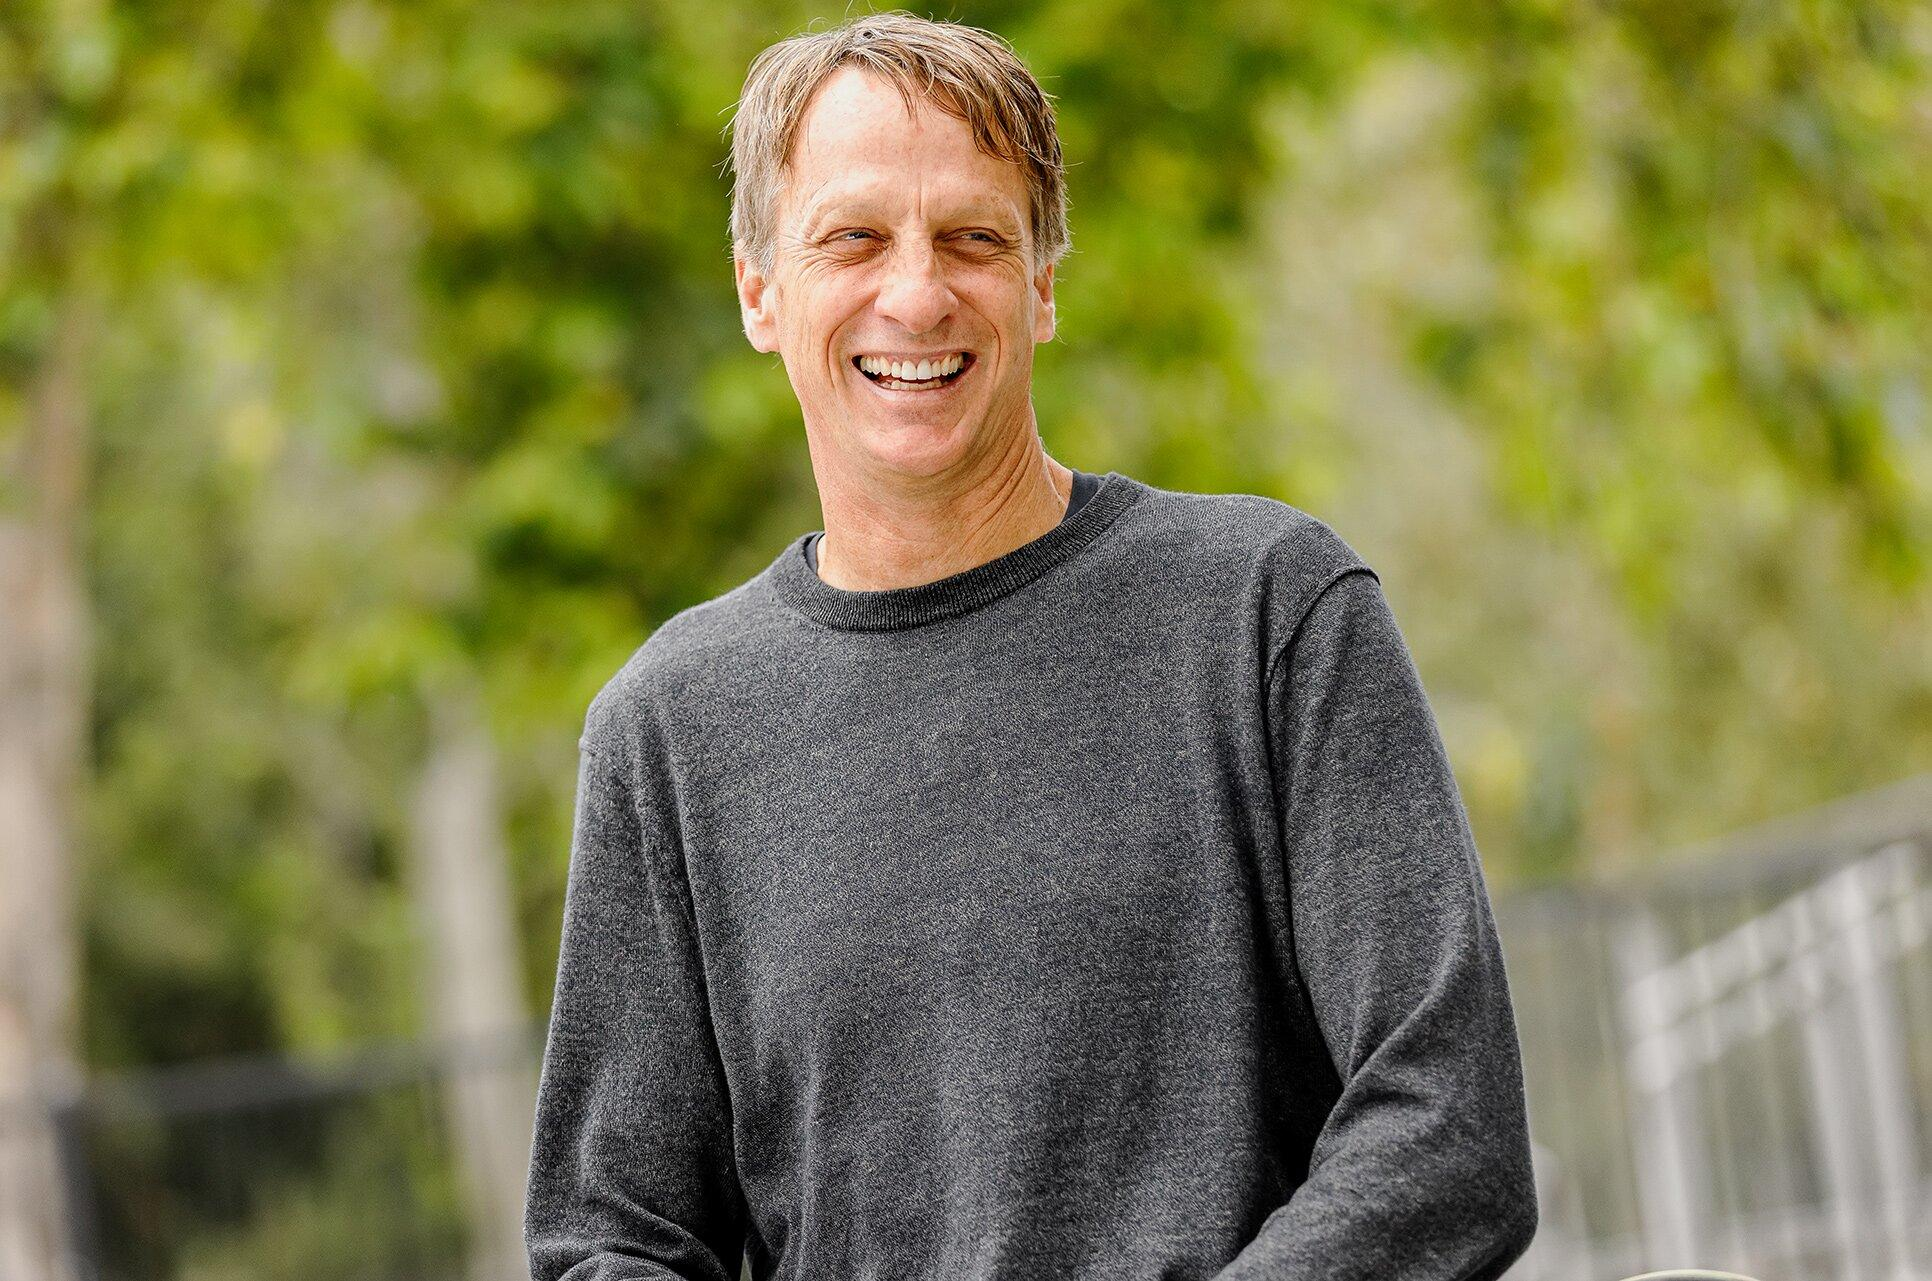 Tony Hawk Says He's 'Proud' to Join NBC Olympics as Correspondent for Skateboarding's Tokyo Debut